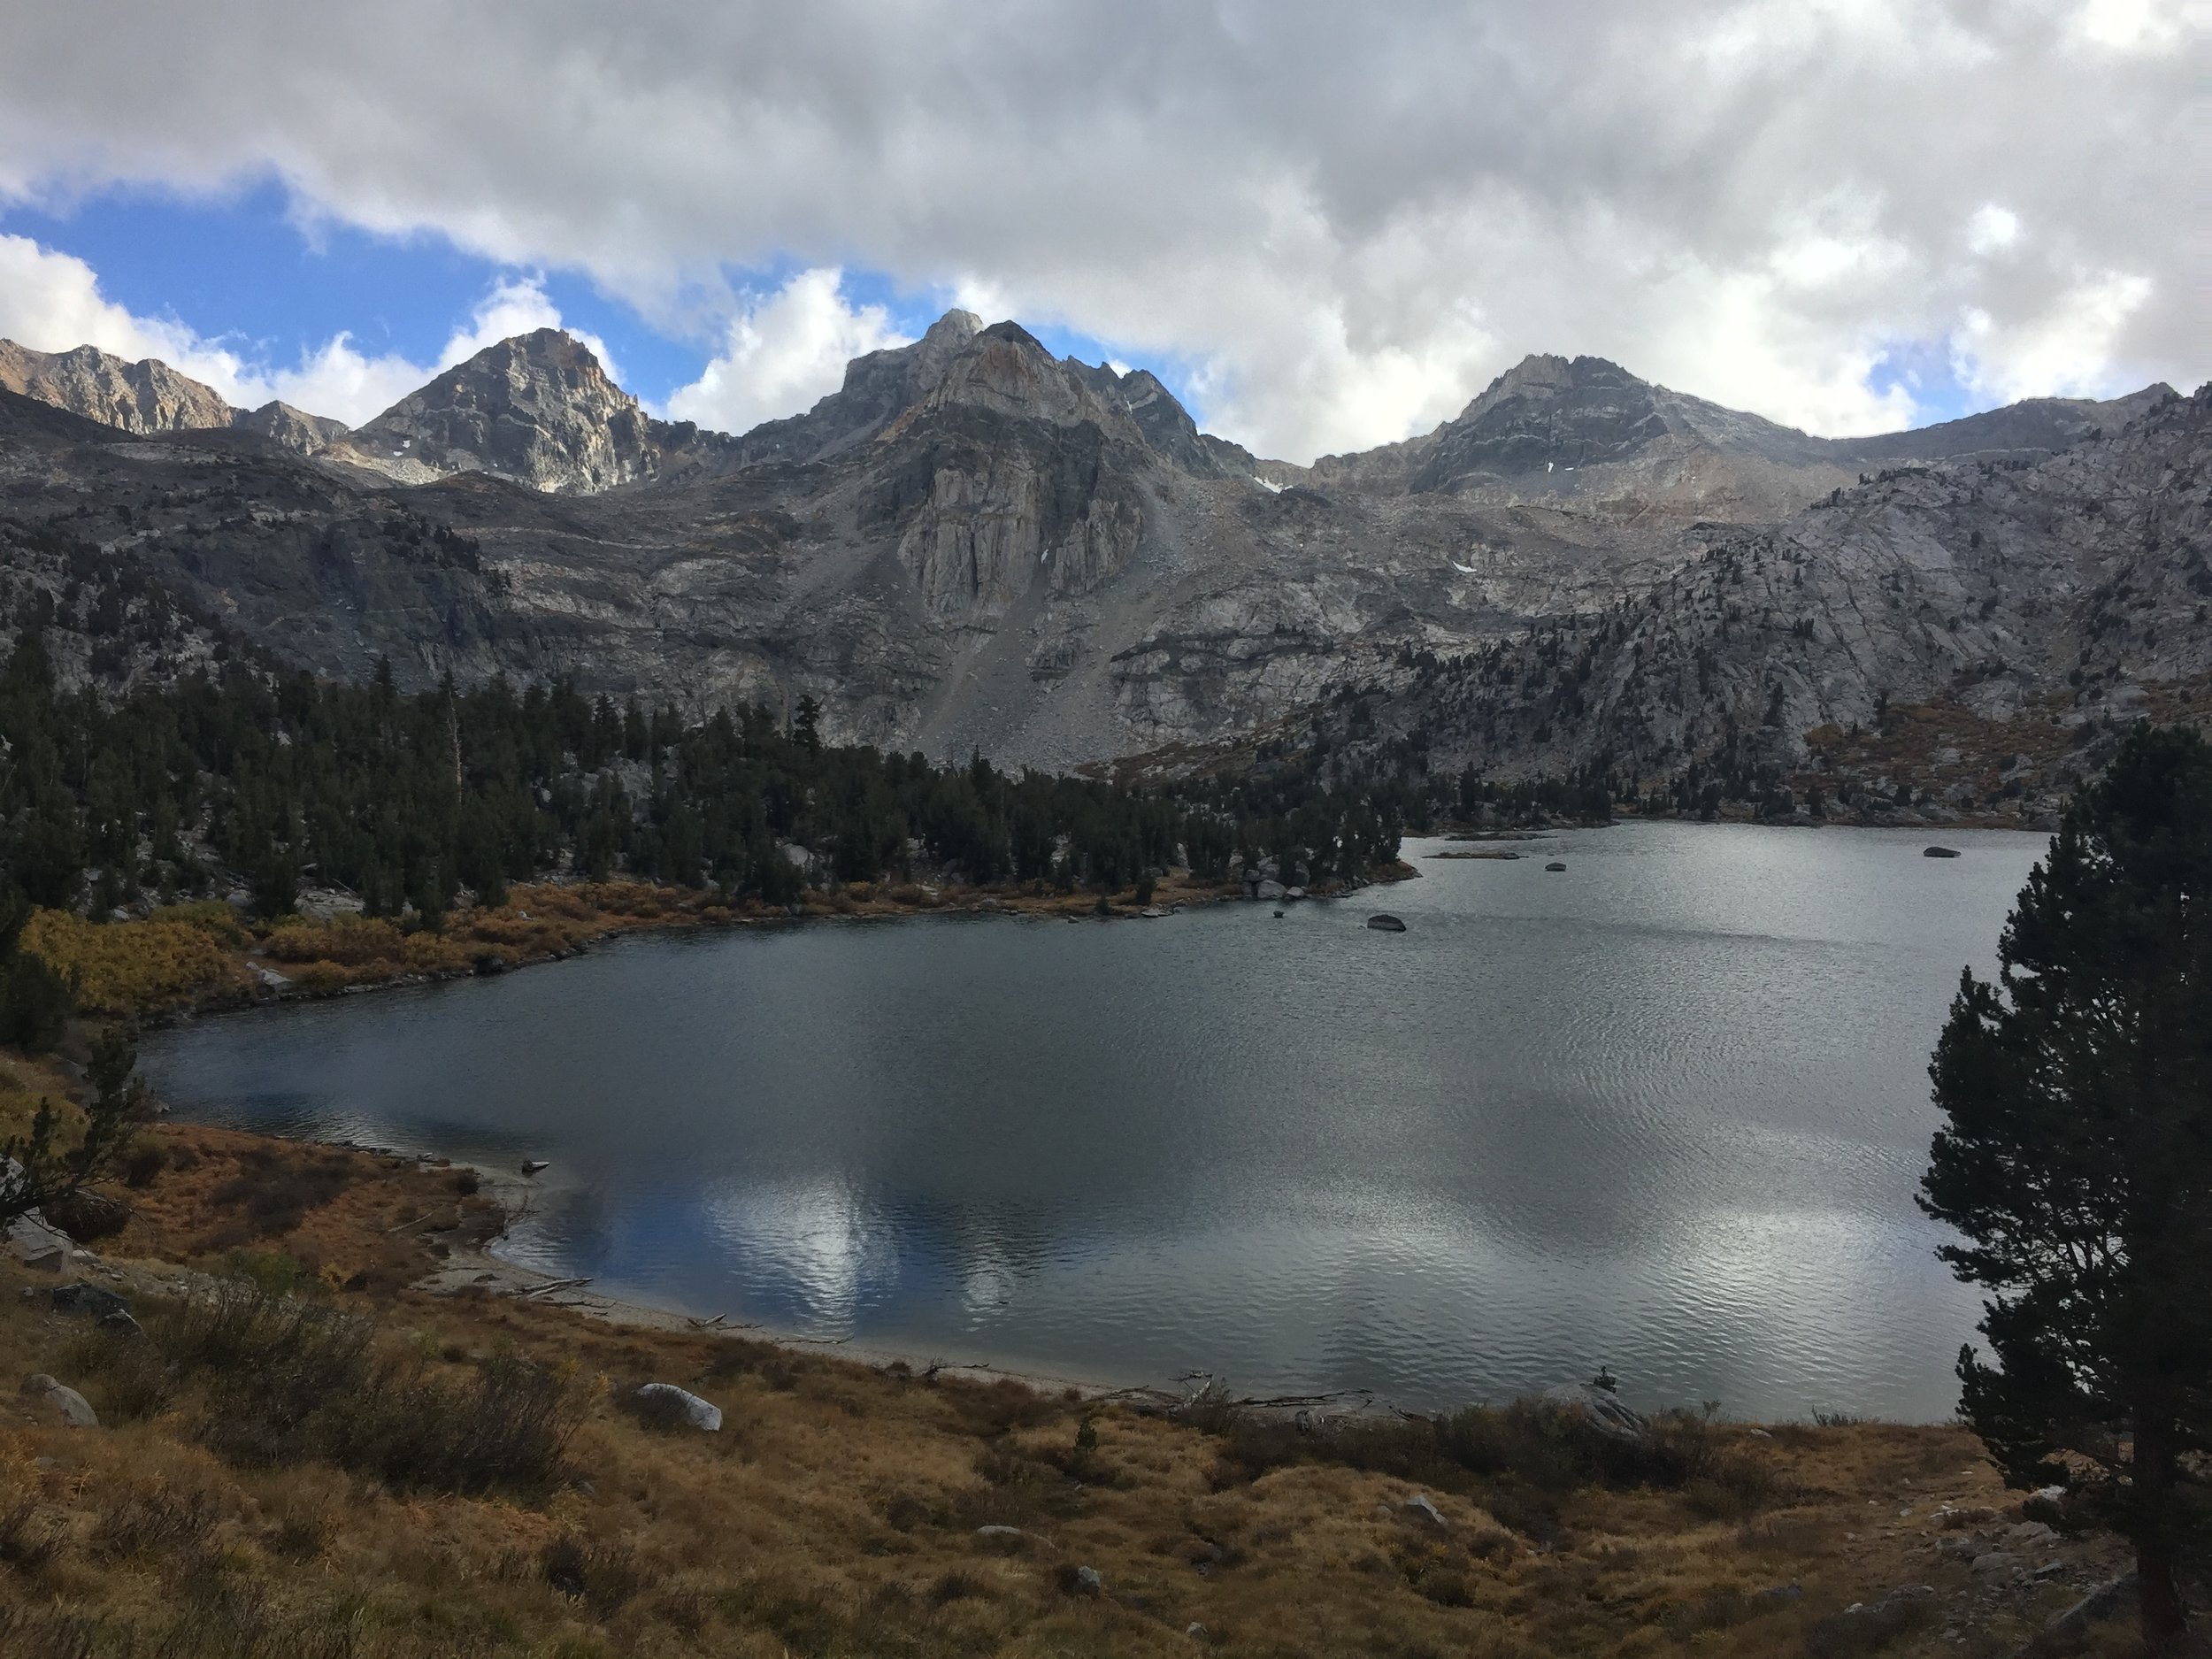 The forecast called for possible precipitation, and the sky has changed rapidly as we make our final approach to Rae Lakes on Day 89 so we'll hurry to pick a campsite in case those clouds mean business. Without the sun the temperature has dropped precipitously.